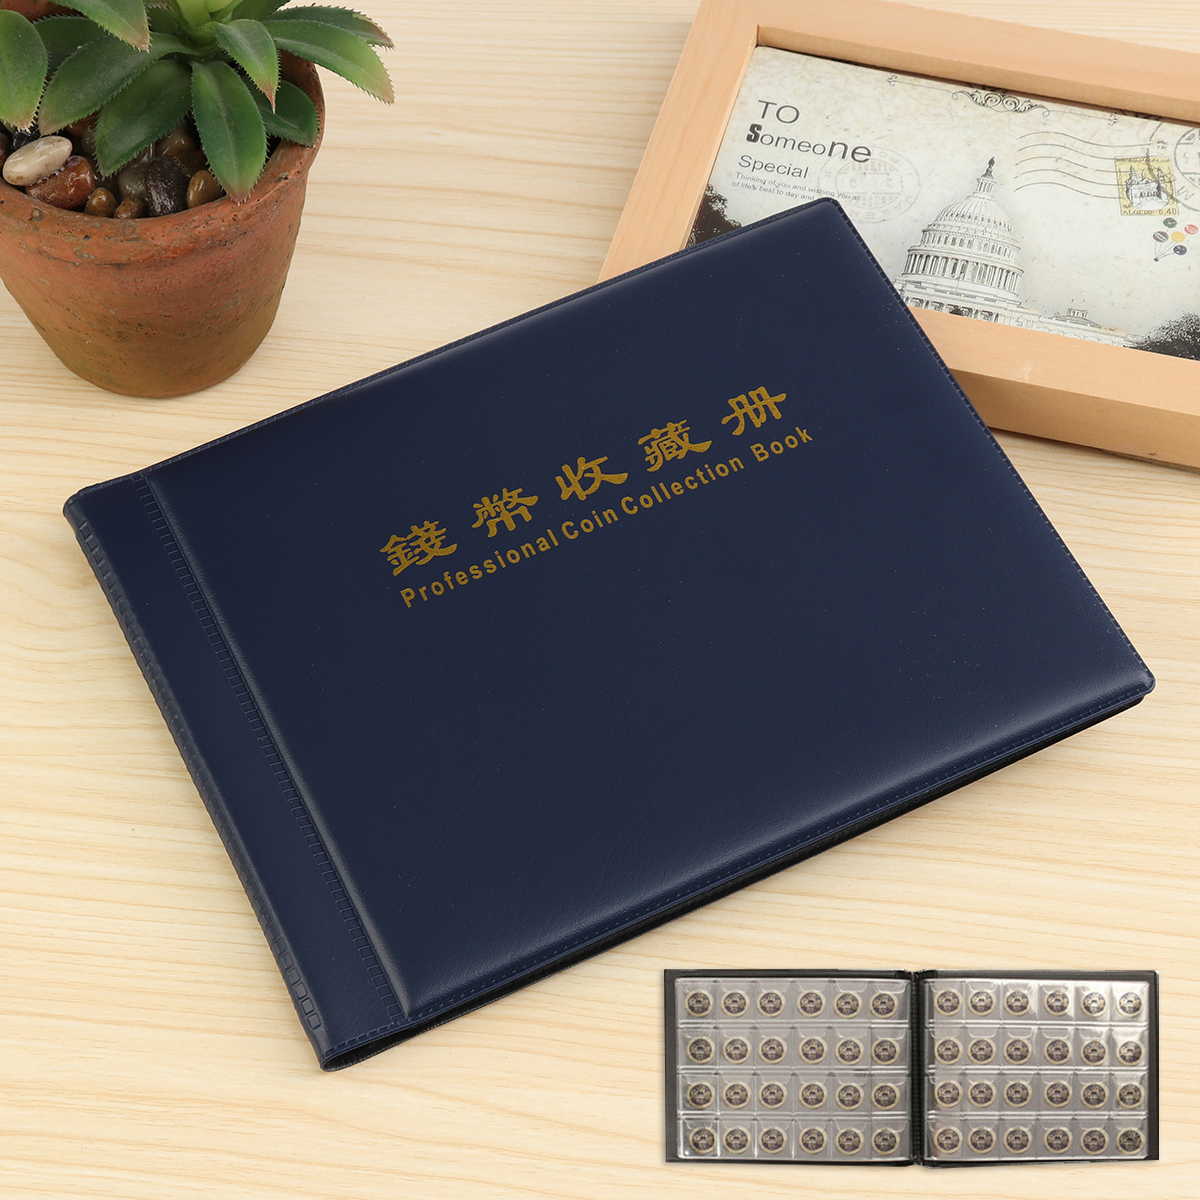 240 Holders Collecting Money Penny Book Collection Coin Storage Album Book 10 page Blue